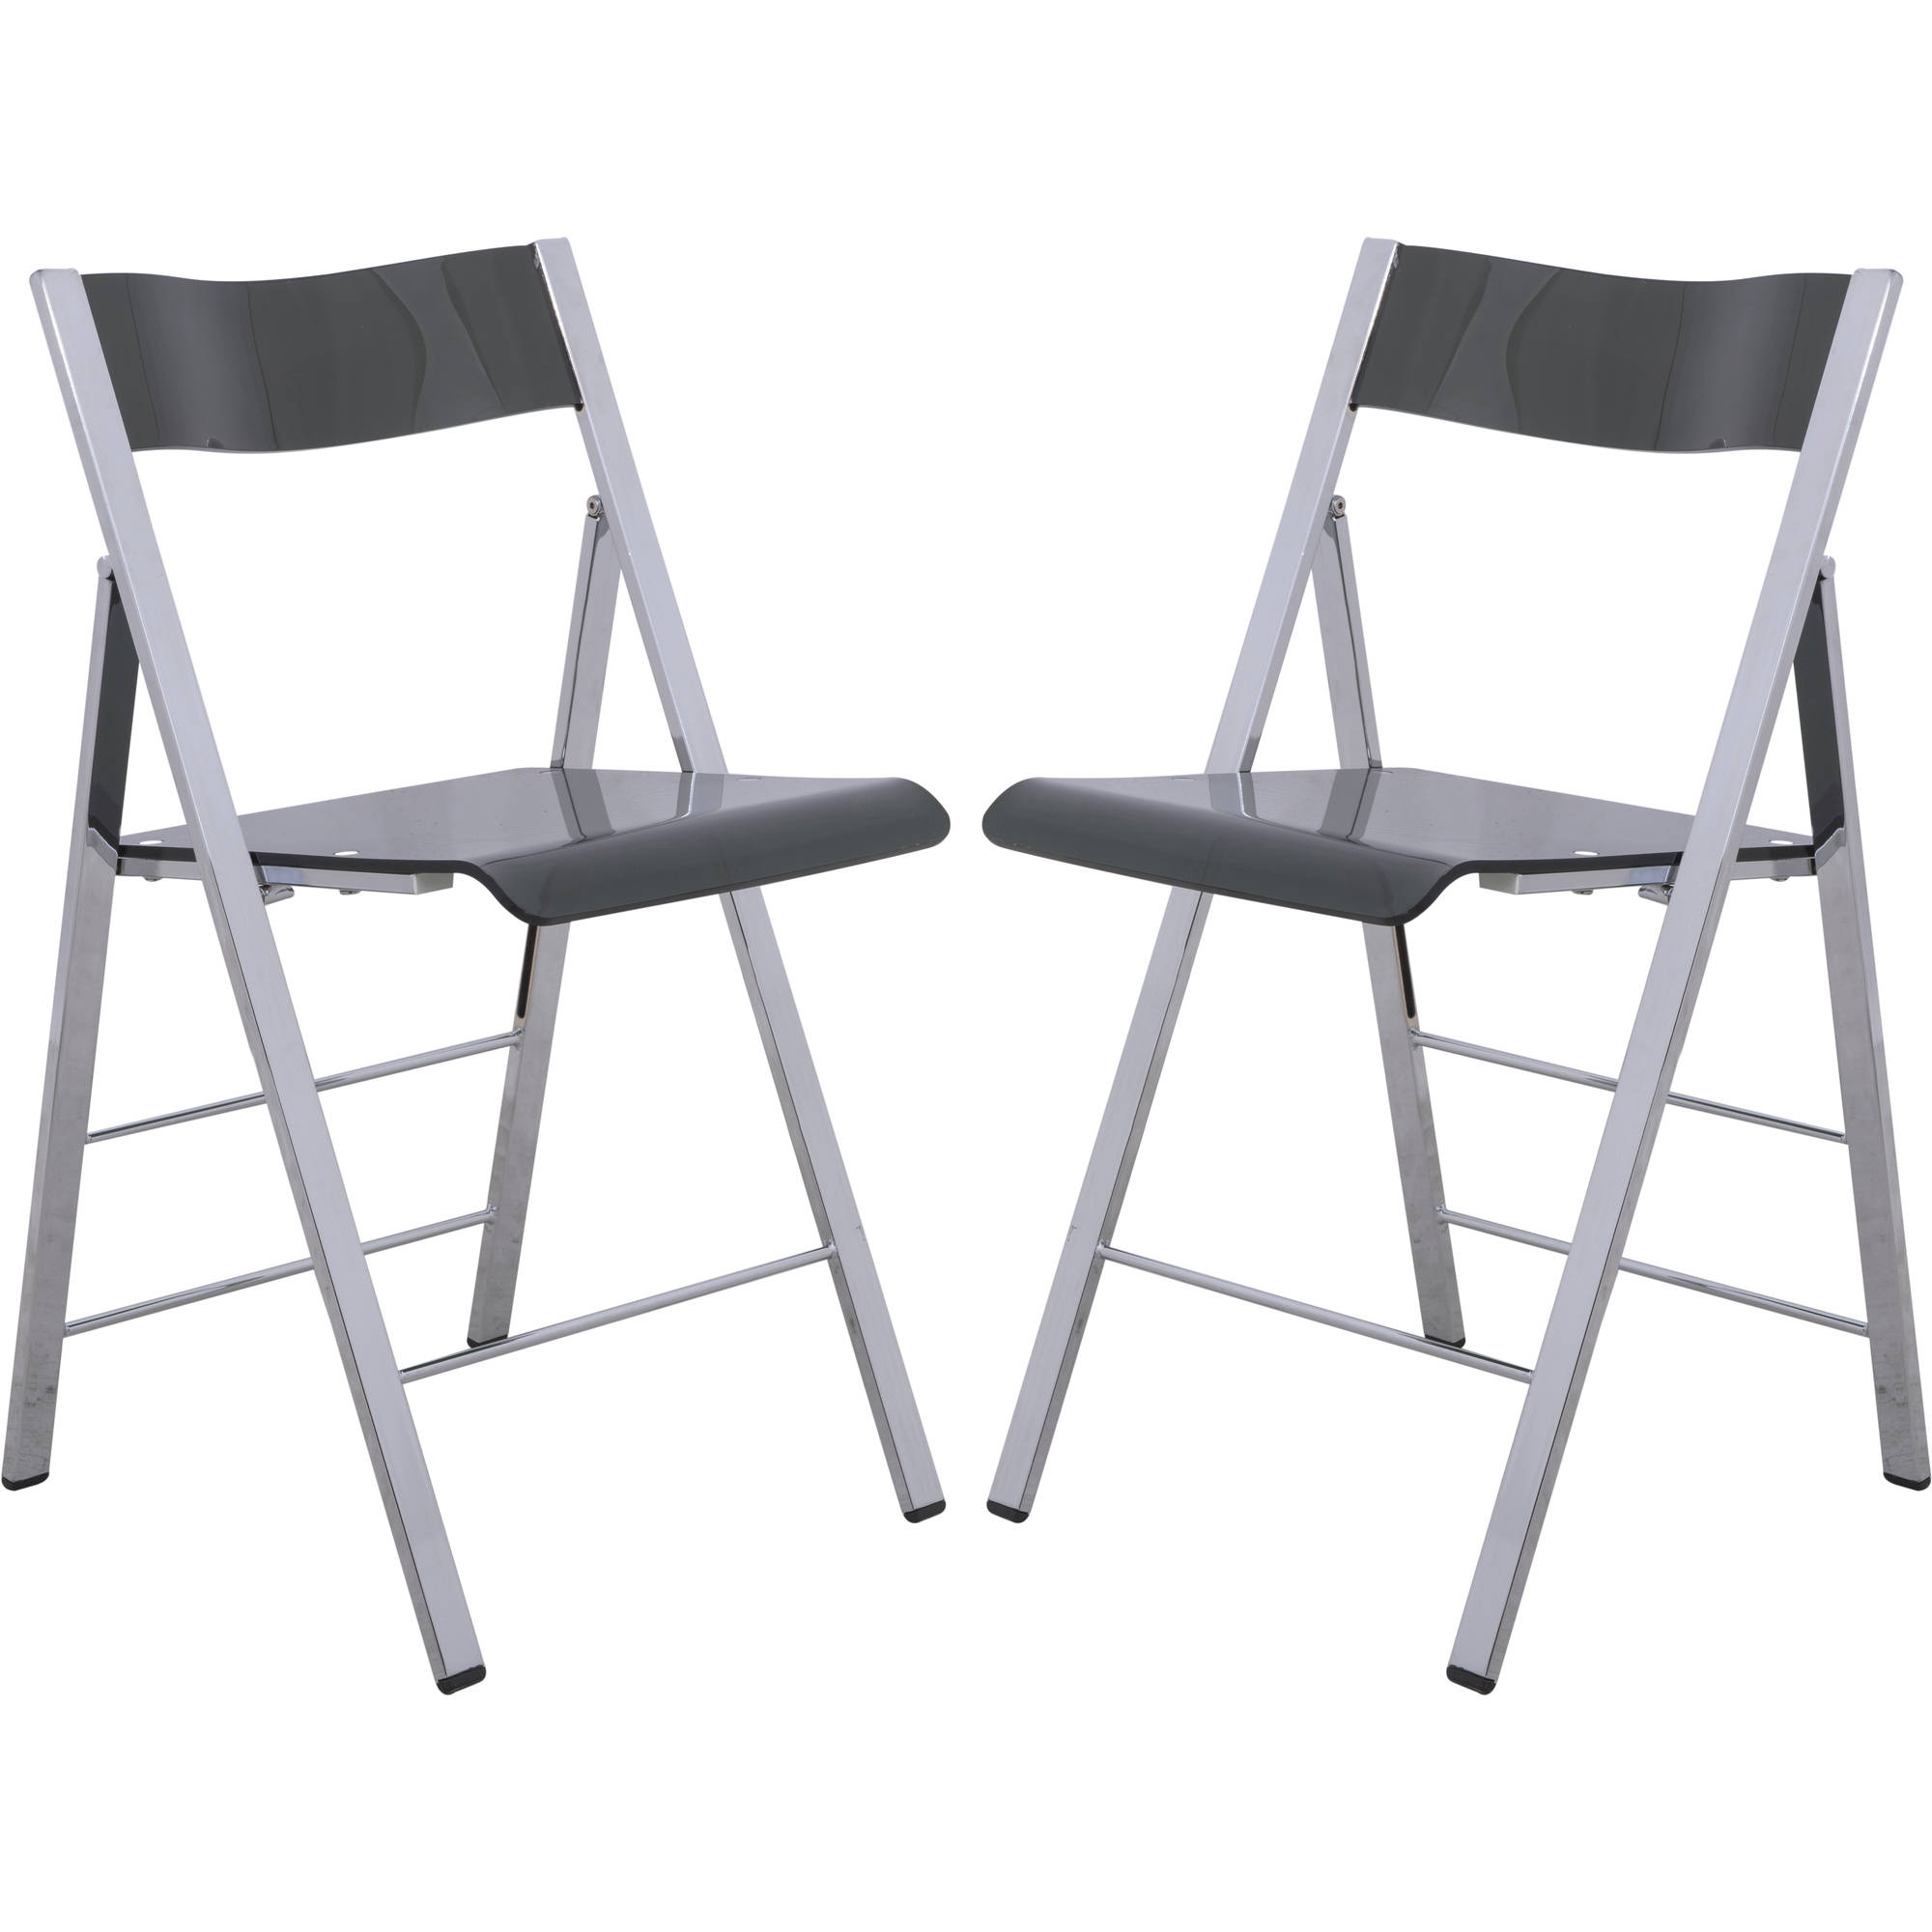 LeisureMod Menno Modern Acrylic Folding Chair in Transparent Black, Set of 2